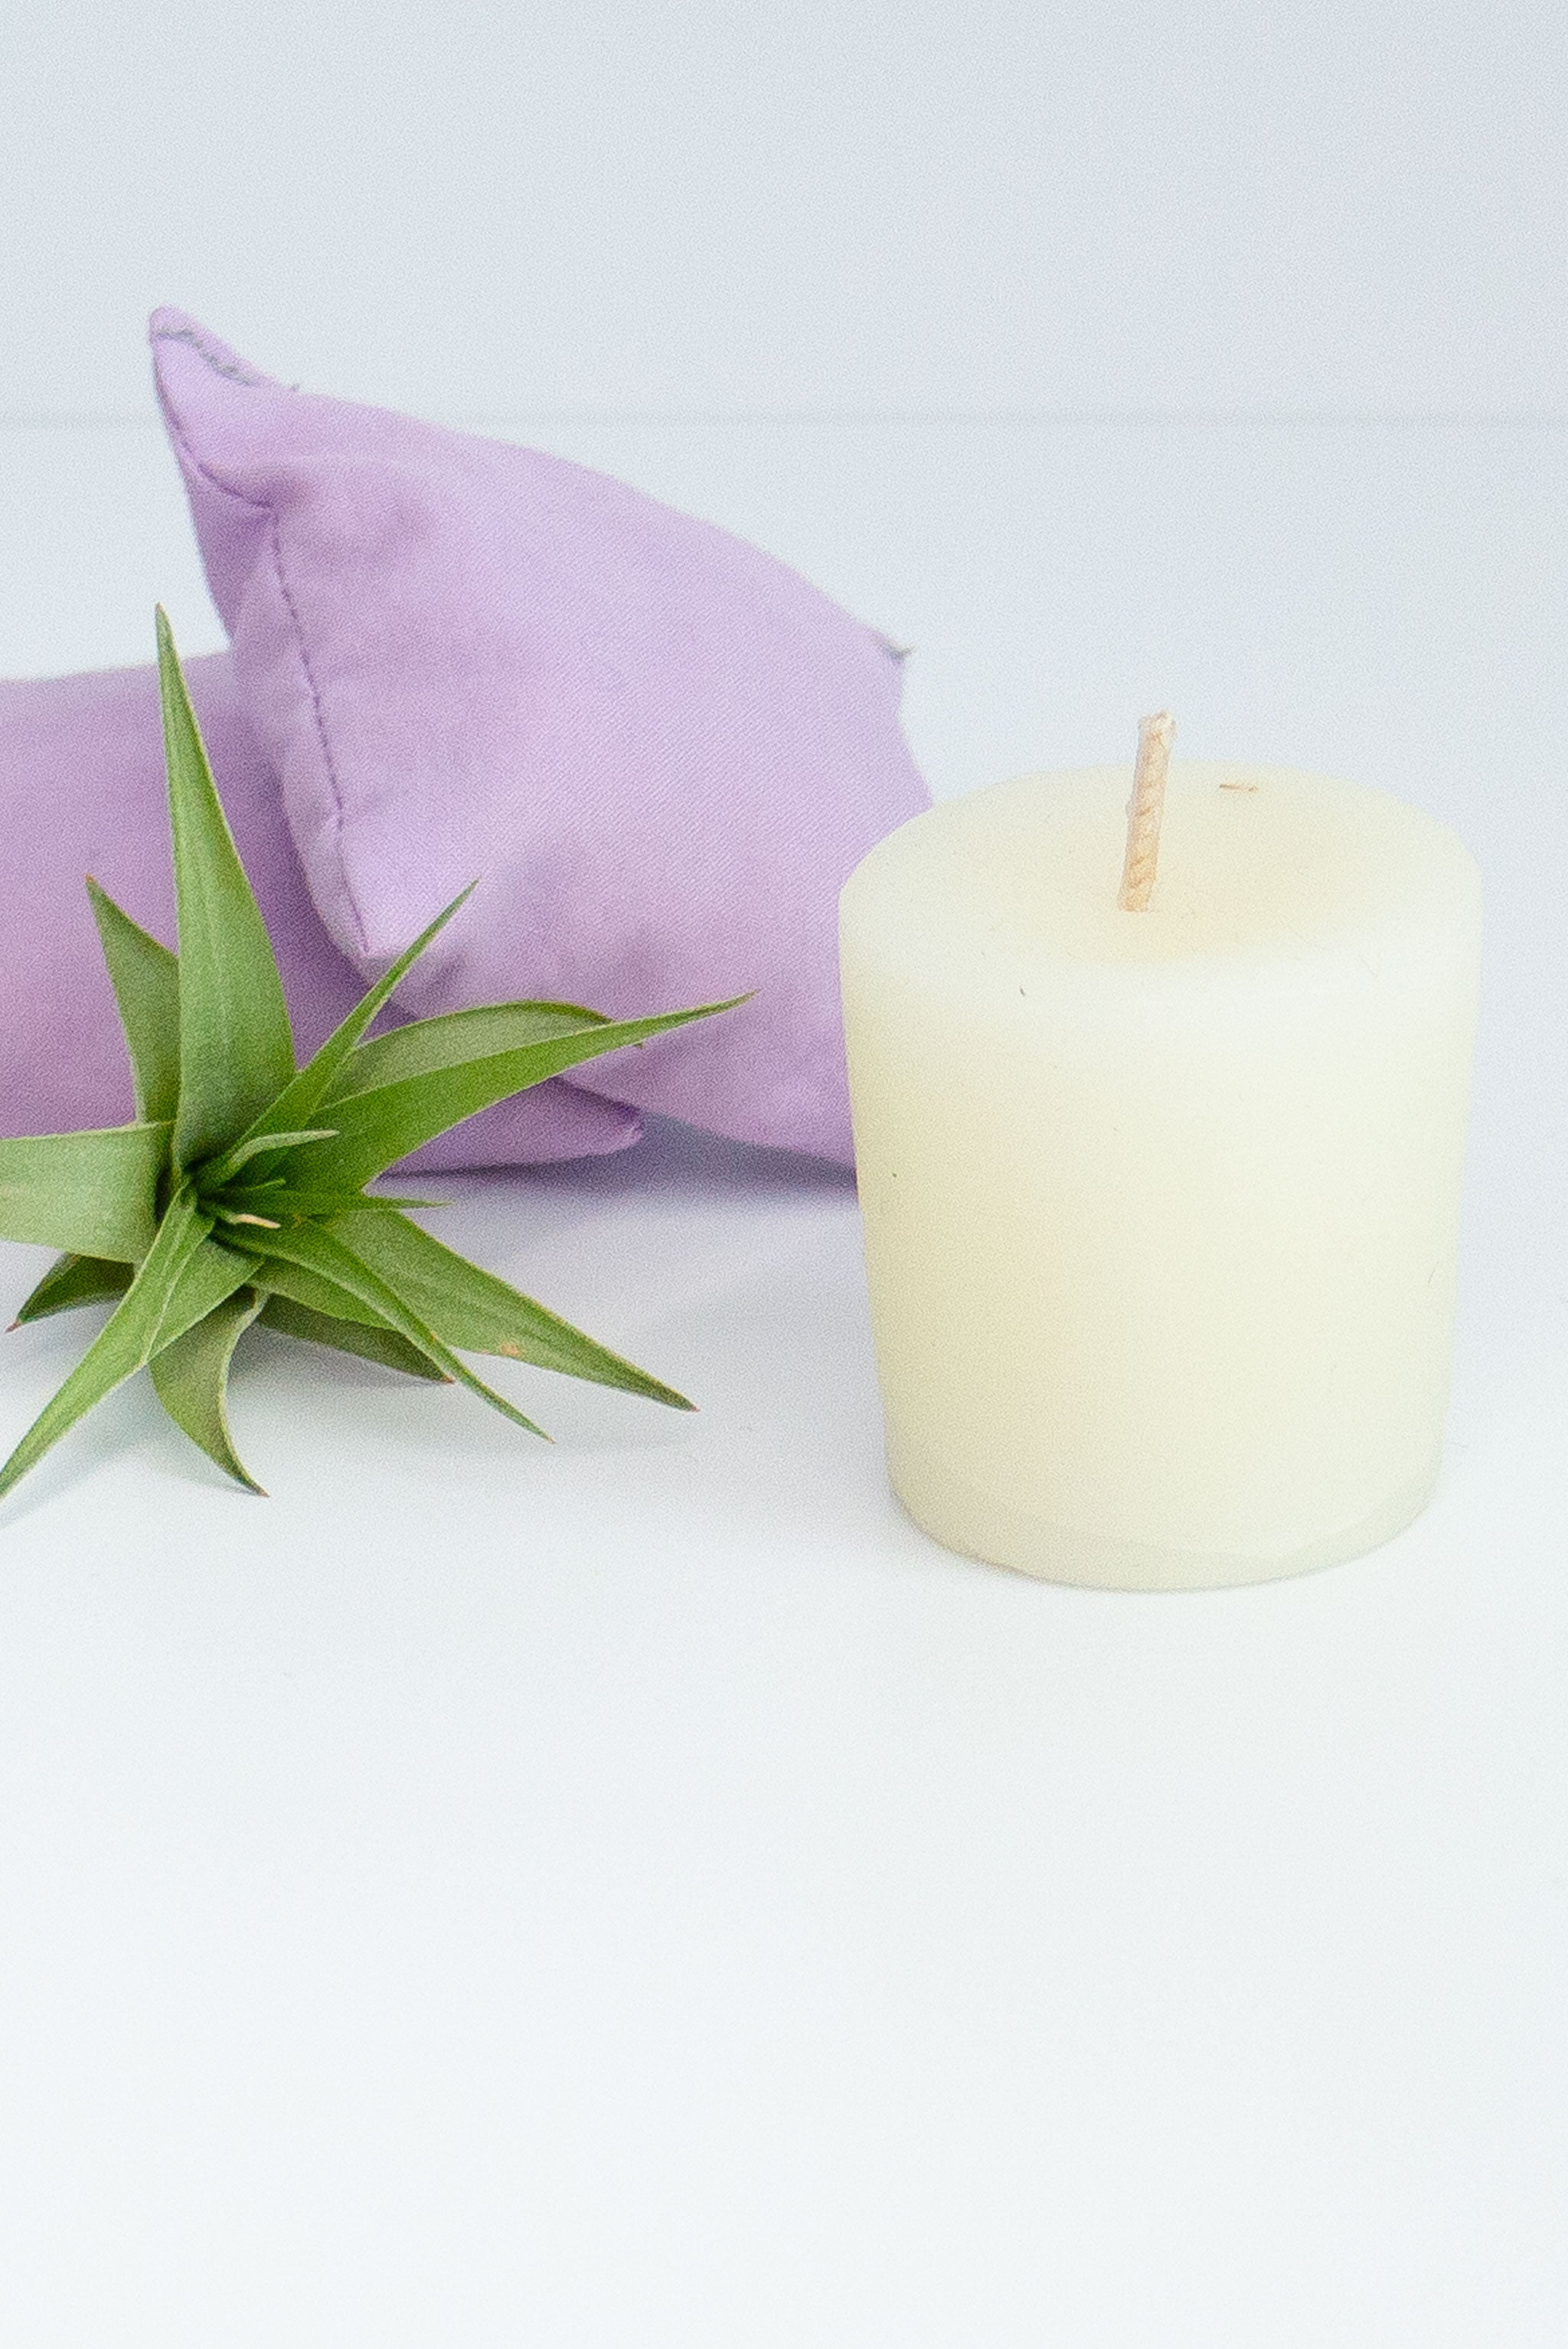 A white votive candle sits next to an air plant and light purple reusable hand warmers on a white background.